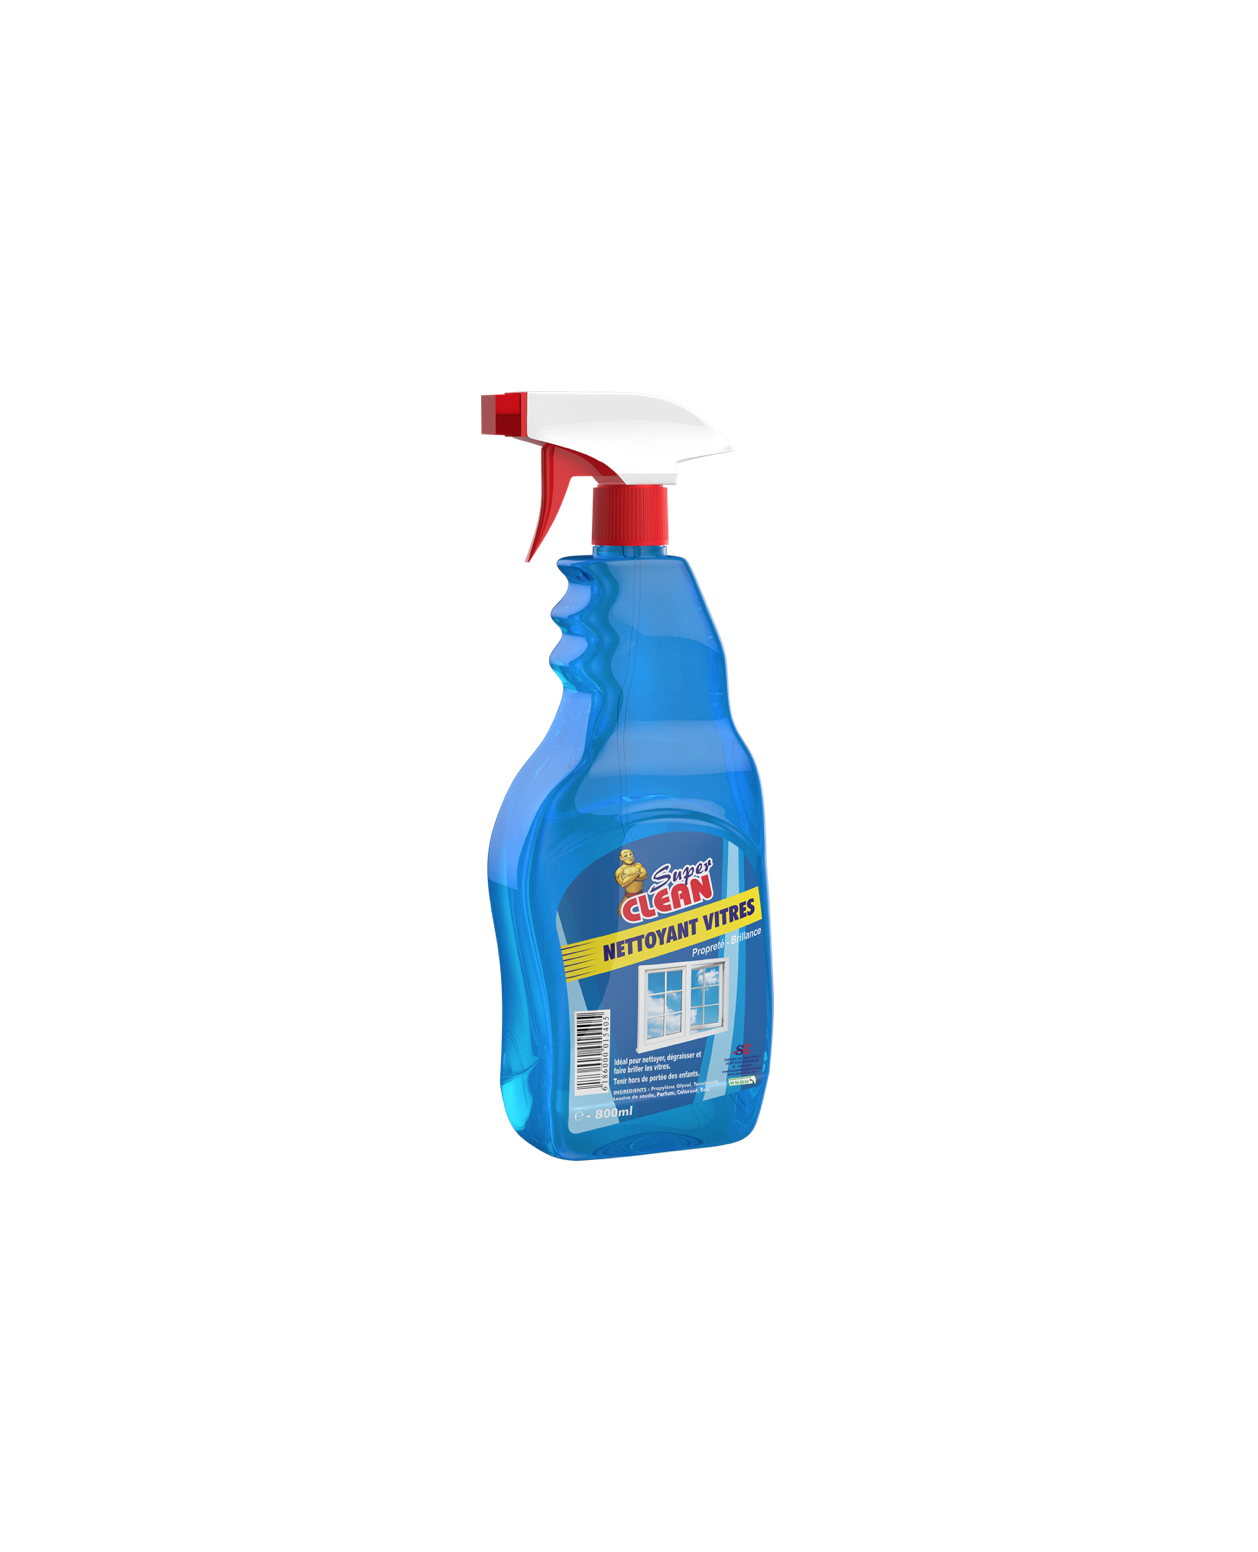 SUPER CLEAN_Nettoyant Vitres 800ml-siprochim_Flacon Only